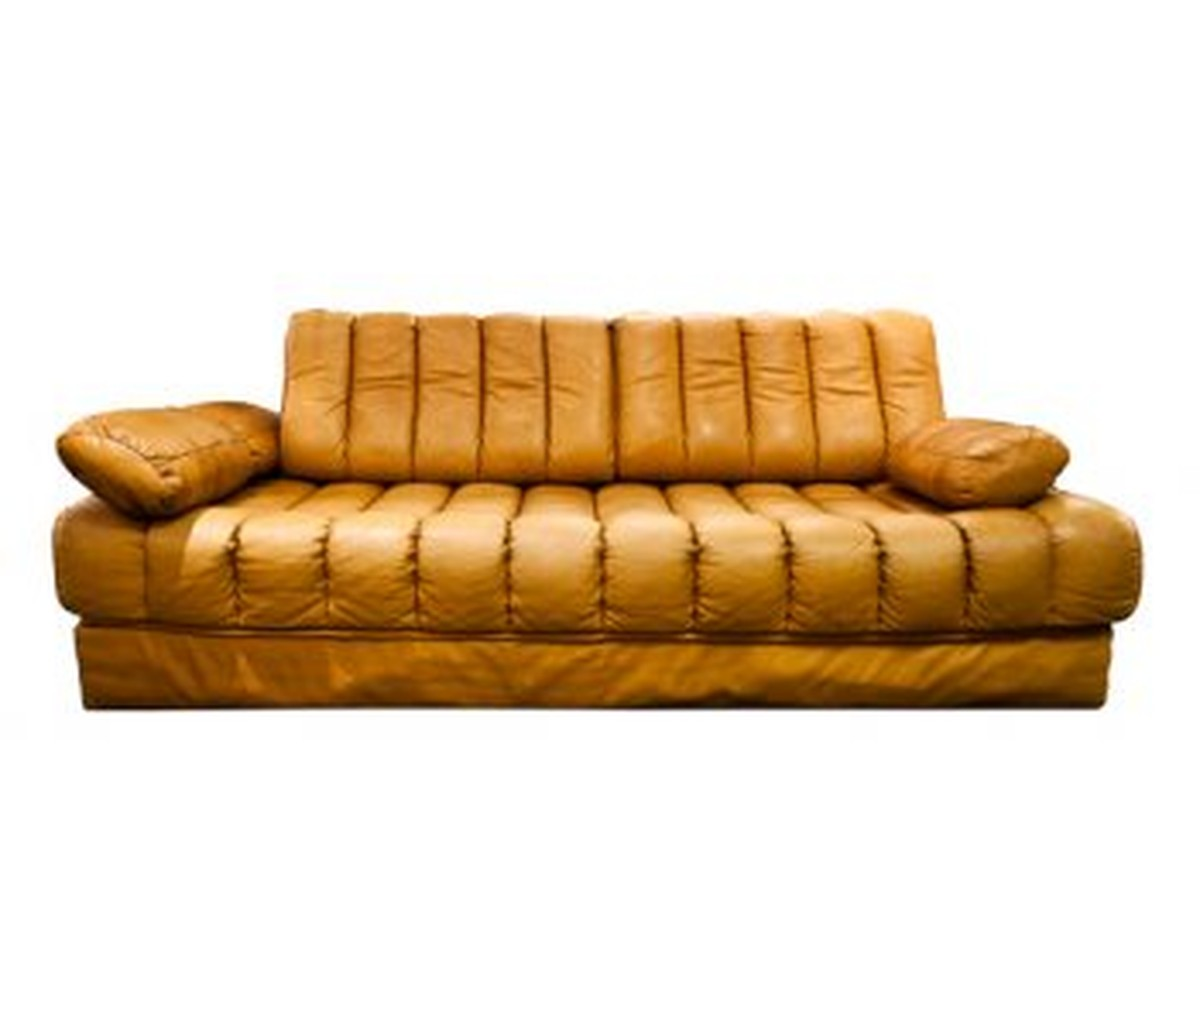 de sede sleeper sofa office reception secondhand vintage and reclaimed 60 39s 1960s